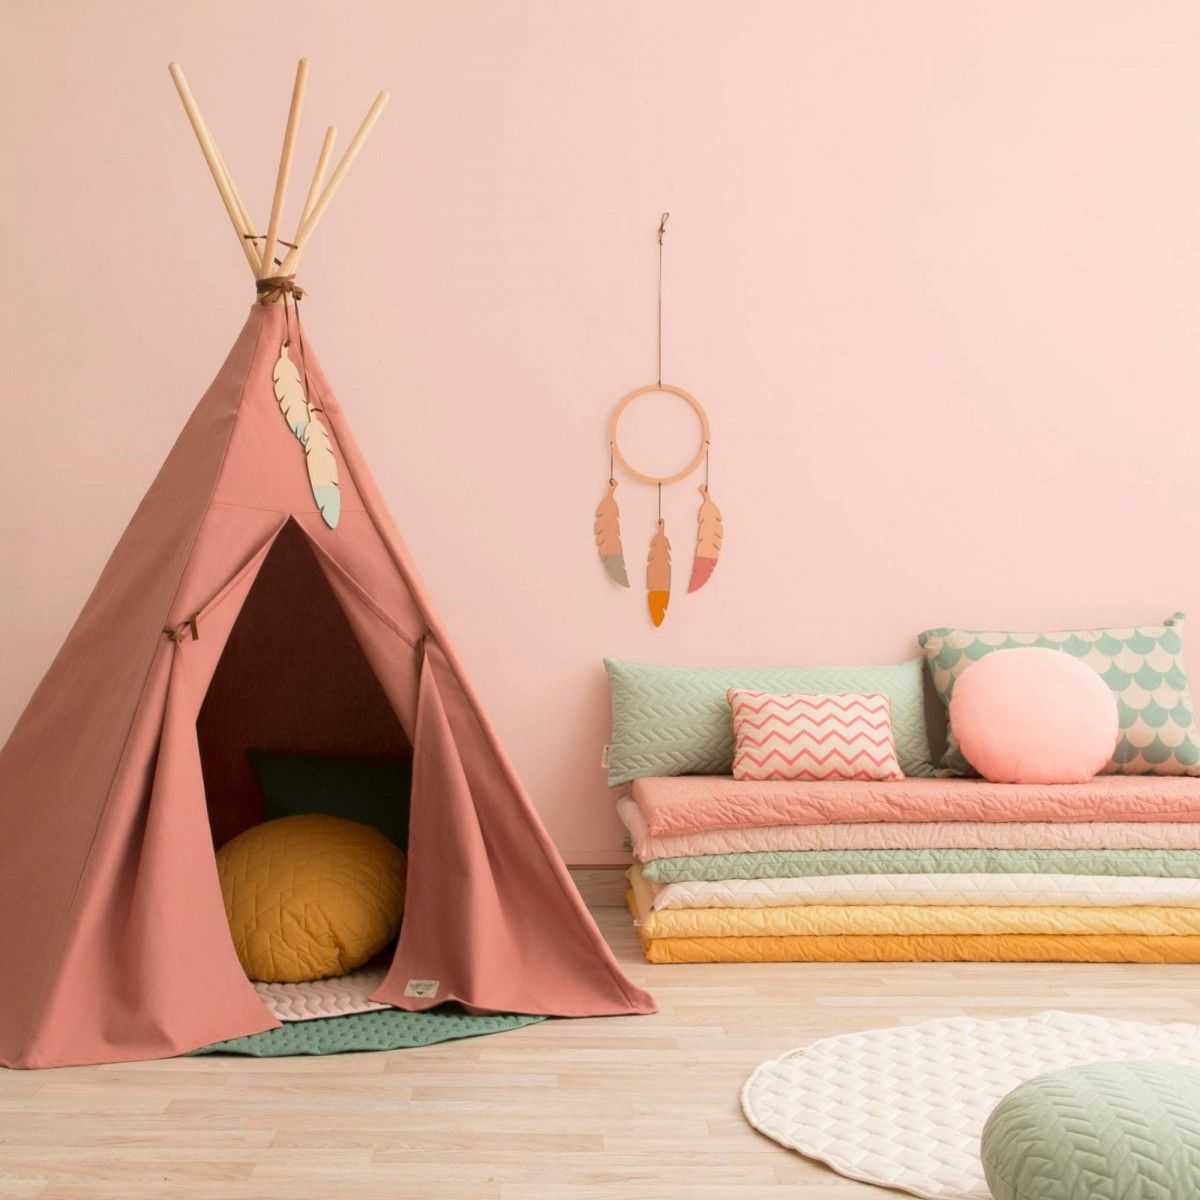 nobodinoz nevada tipi in dolce vita pink babyzimmer. Black Bedroom Furniture Sets. Home Design Ideas